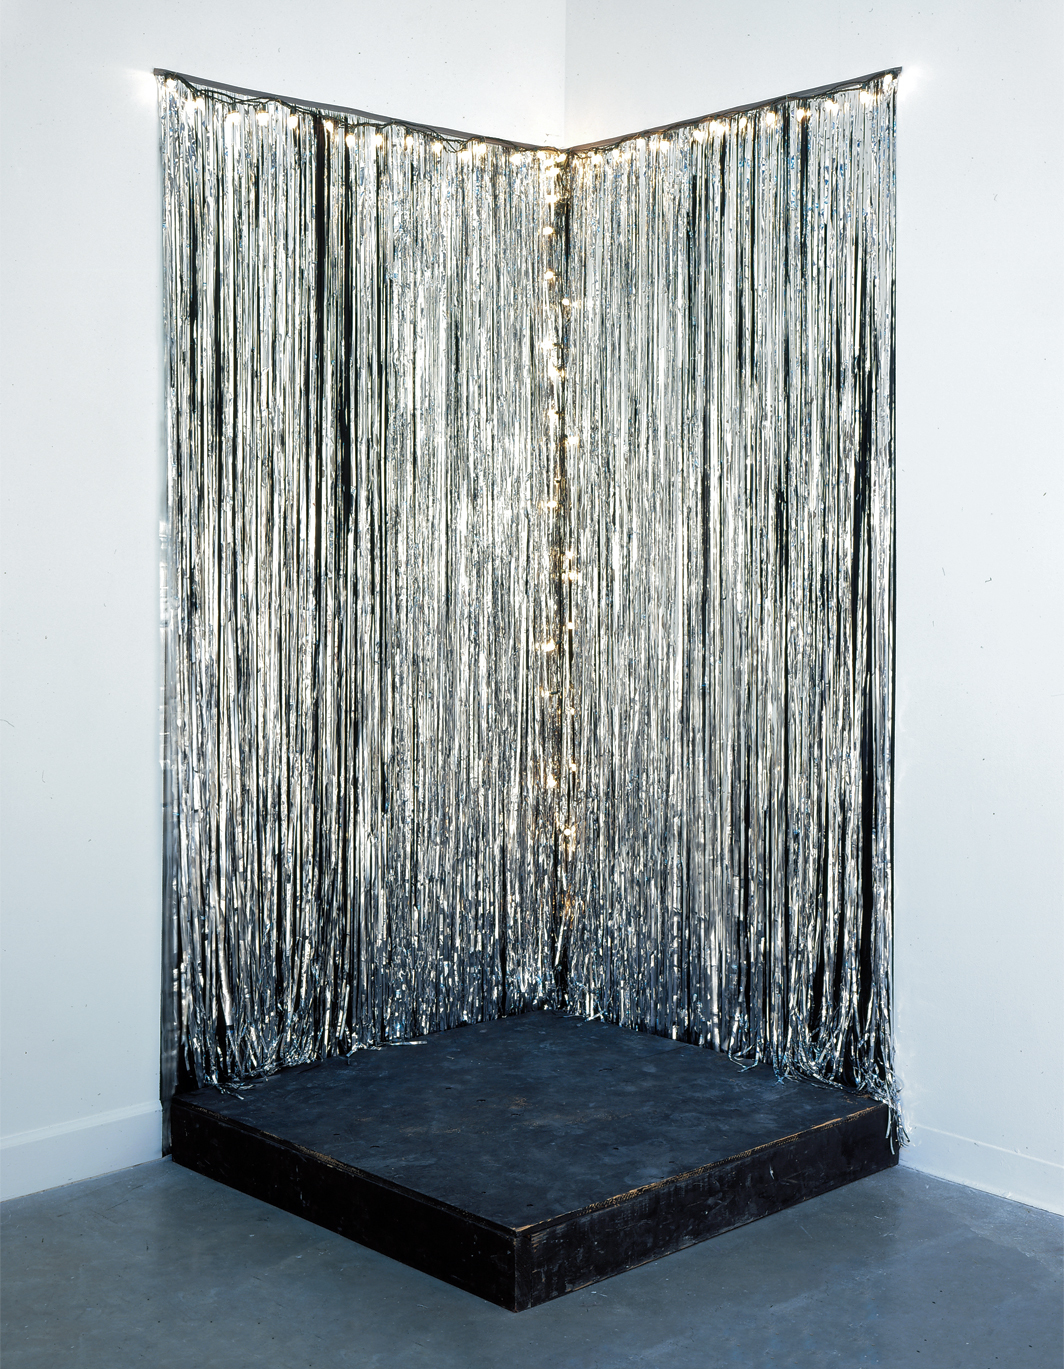 Jack Pierson, Silver Jackie, 1991, plywood, silver Mylar, Christmas lights, 96 × 48 1⁄4 × 48